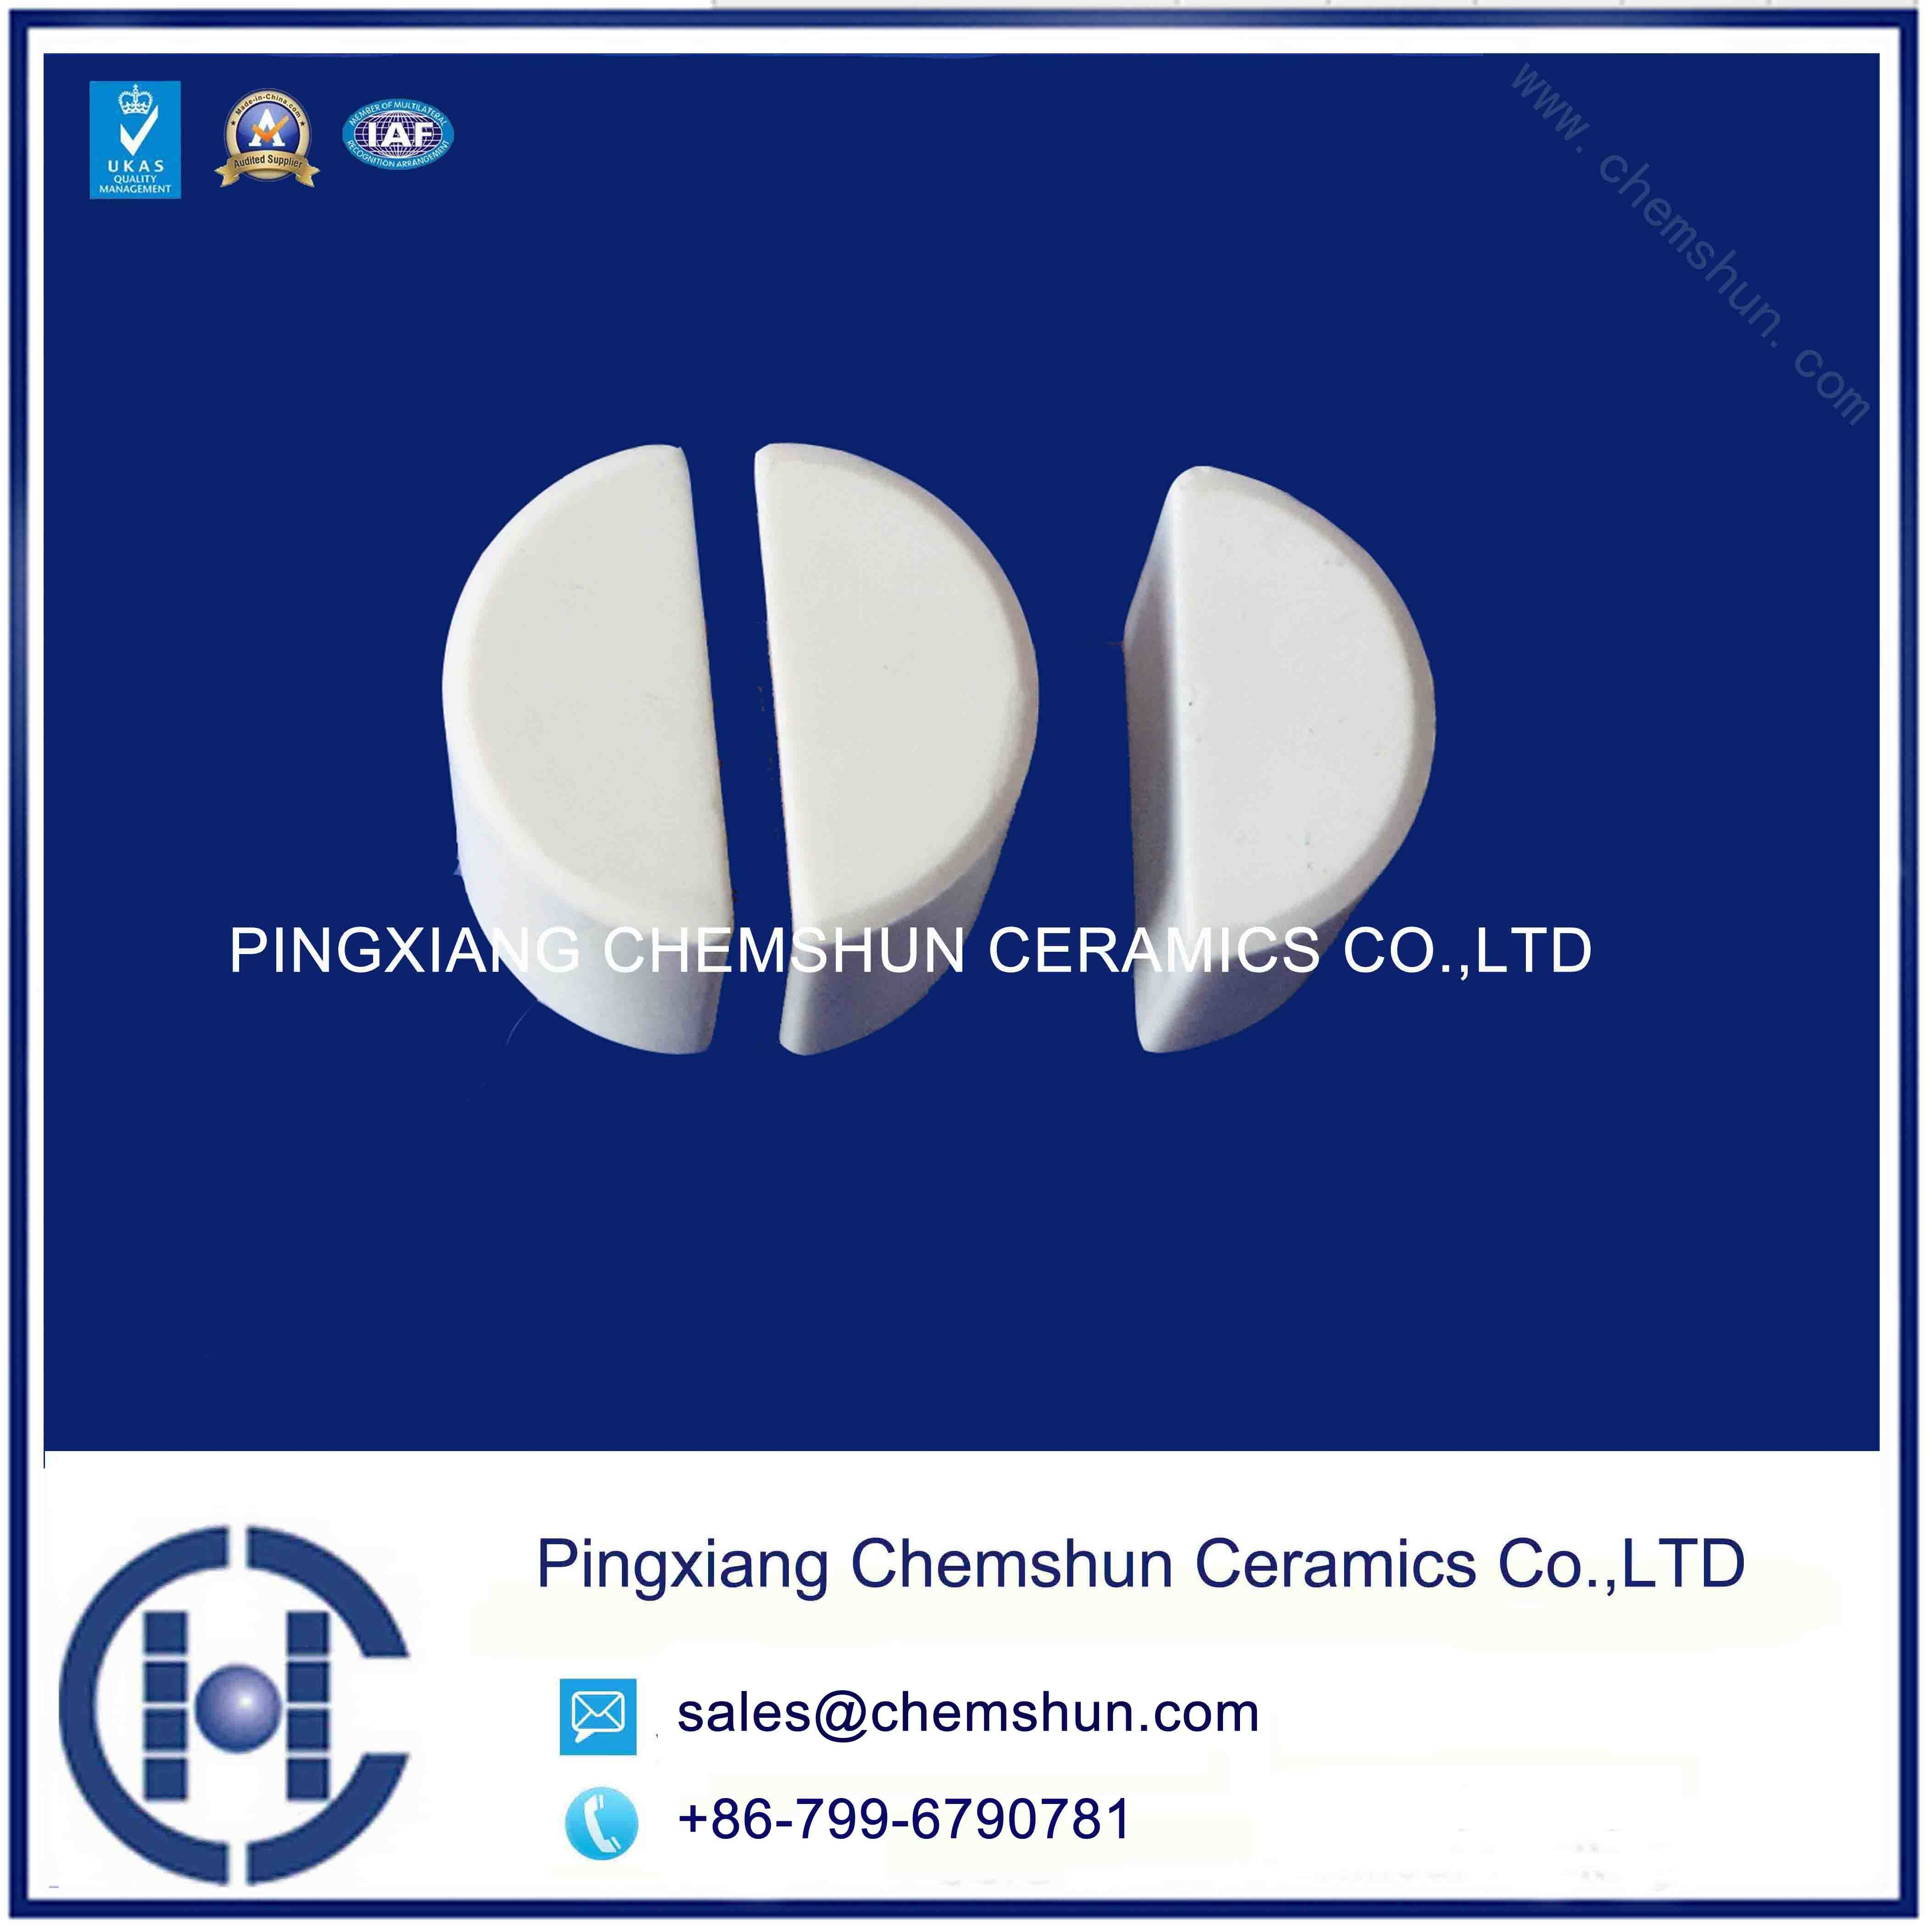 Chemshun Half Alumina Ceramic Cylinder for Rubber Ceramic Application Manufactueres